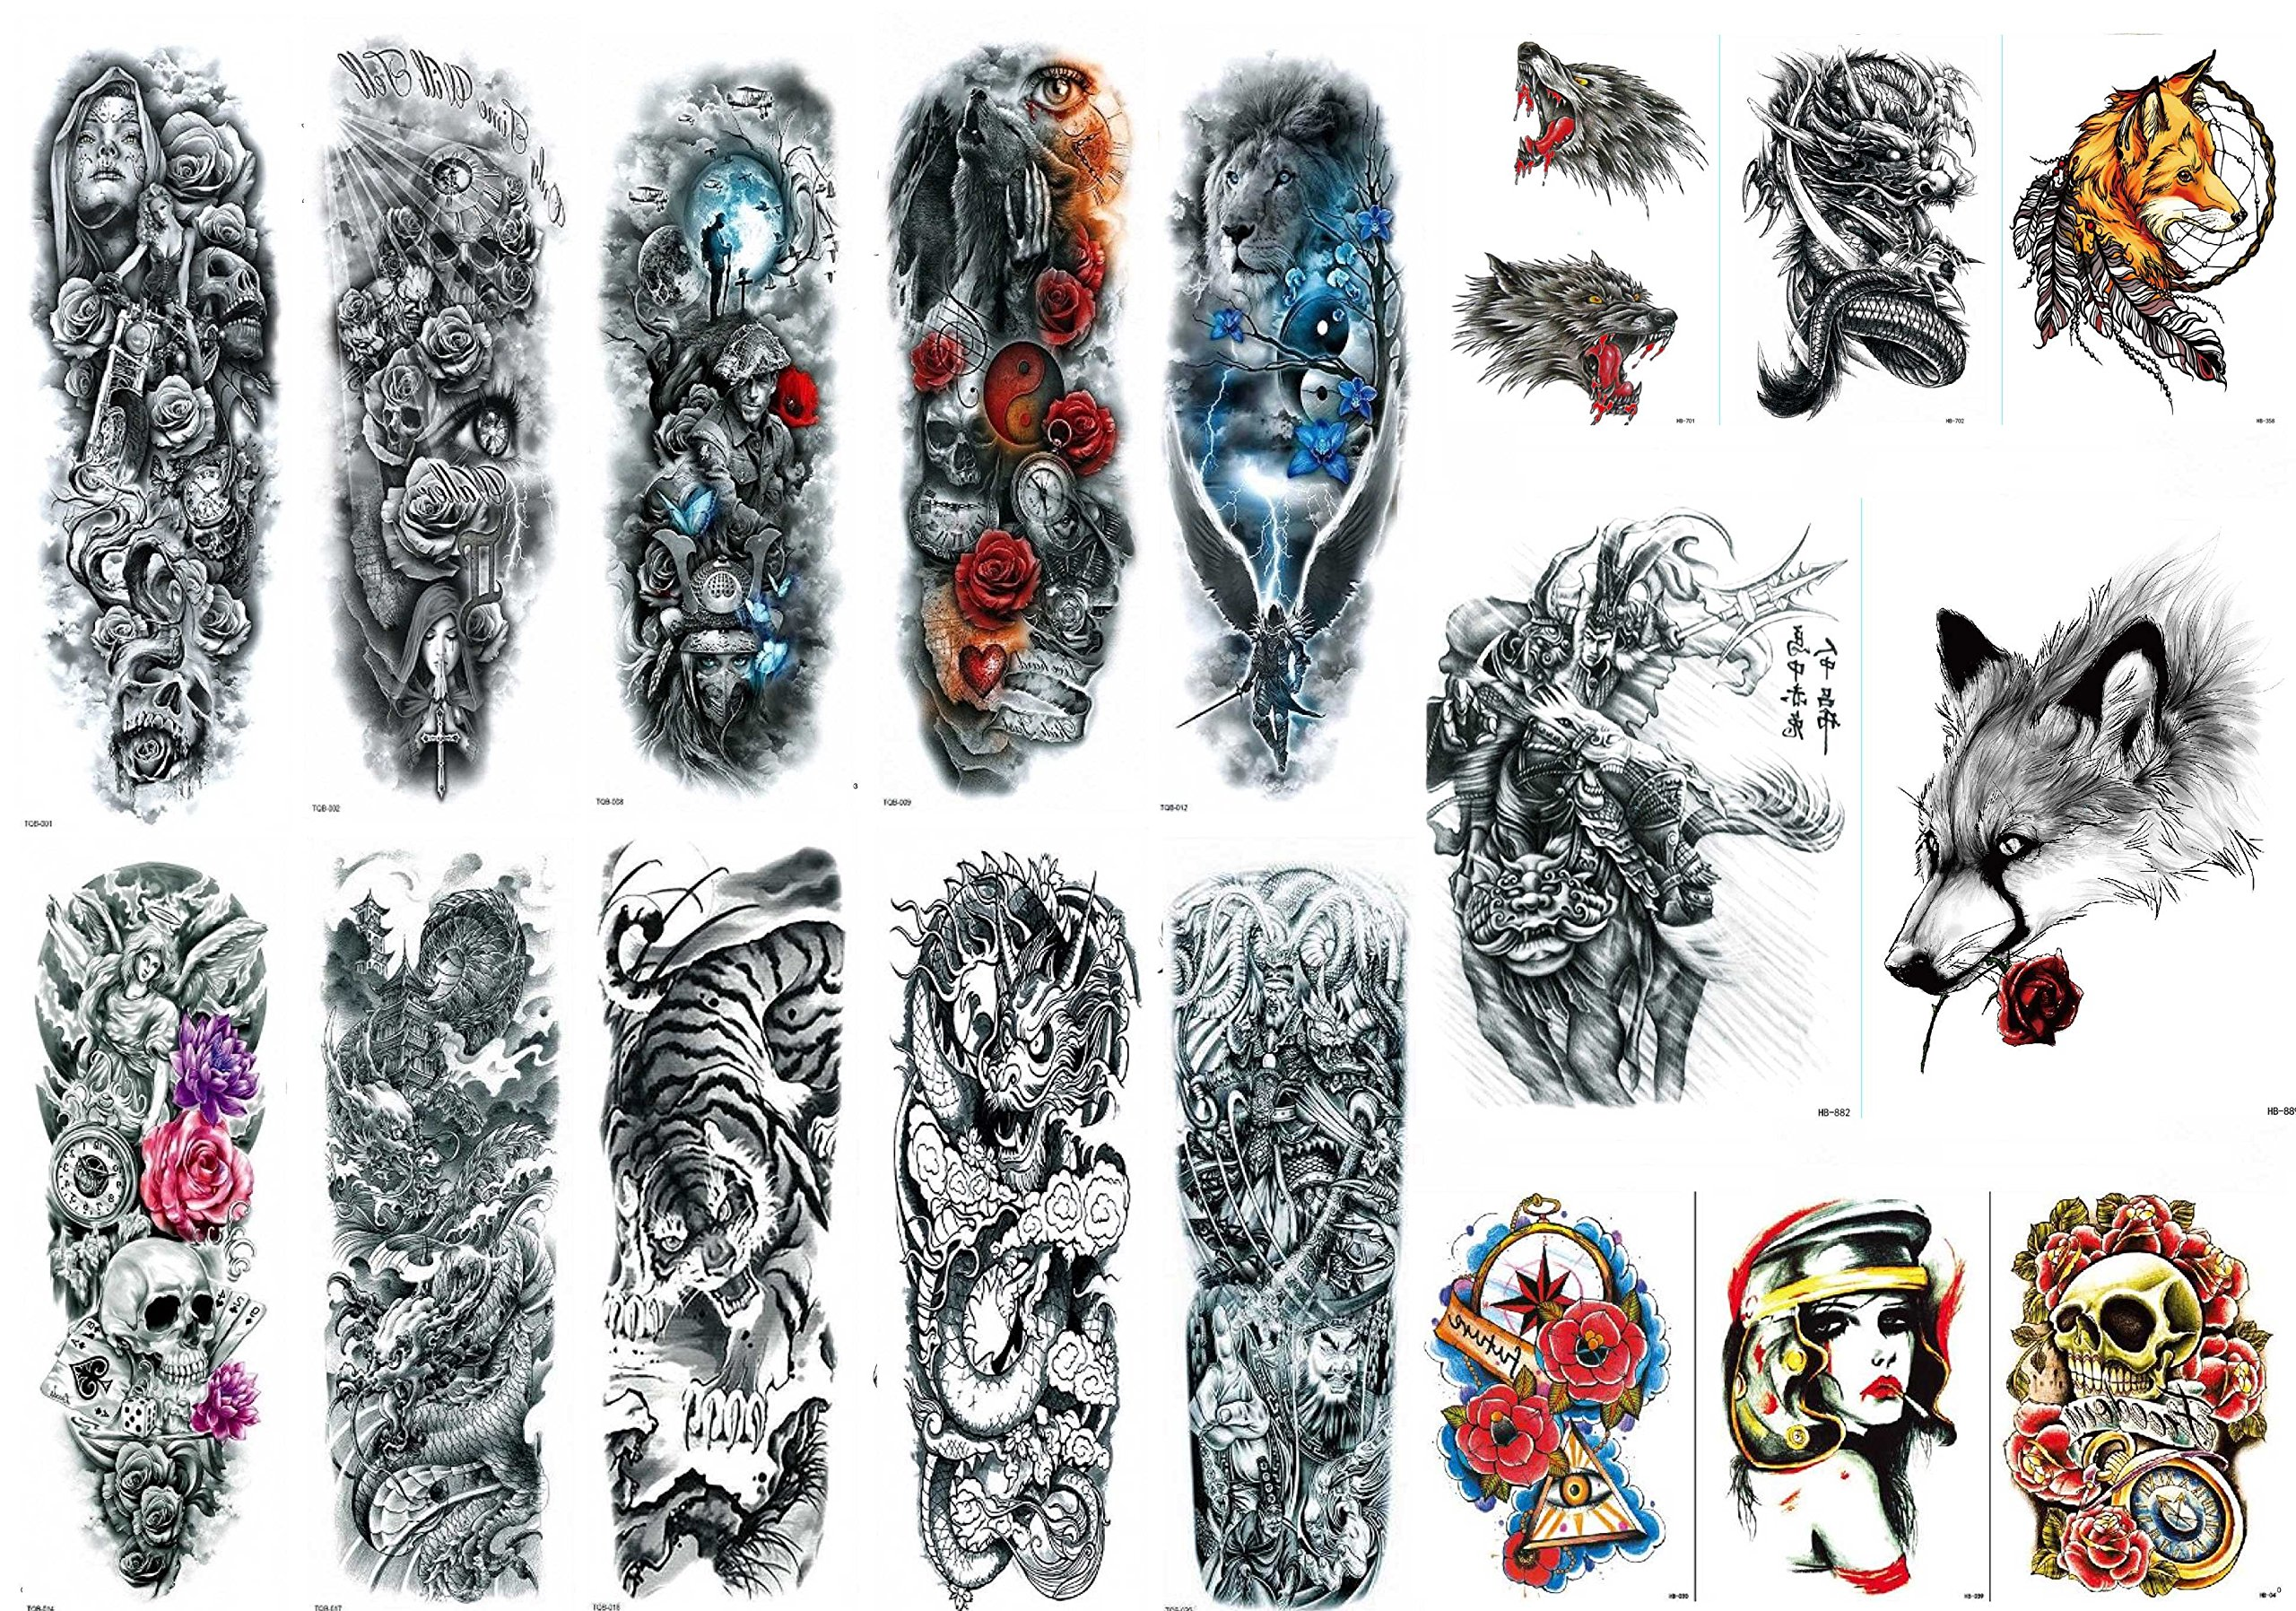 Nutrition Bizz Extra Large Temporary Tattoos Full Half Arm Tattoo Sleeves 18 Sheets for Men Women Teen Fake Tattoo Biker Tattoo Waterproof Stickers for Arms Shoulders Chest & Back by NutritionBizz (Image #1)